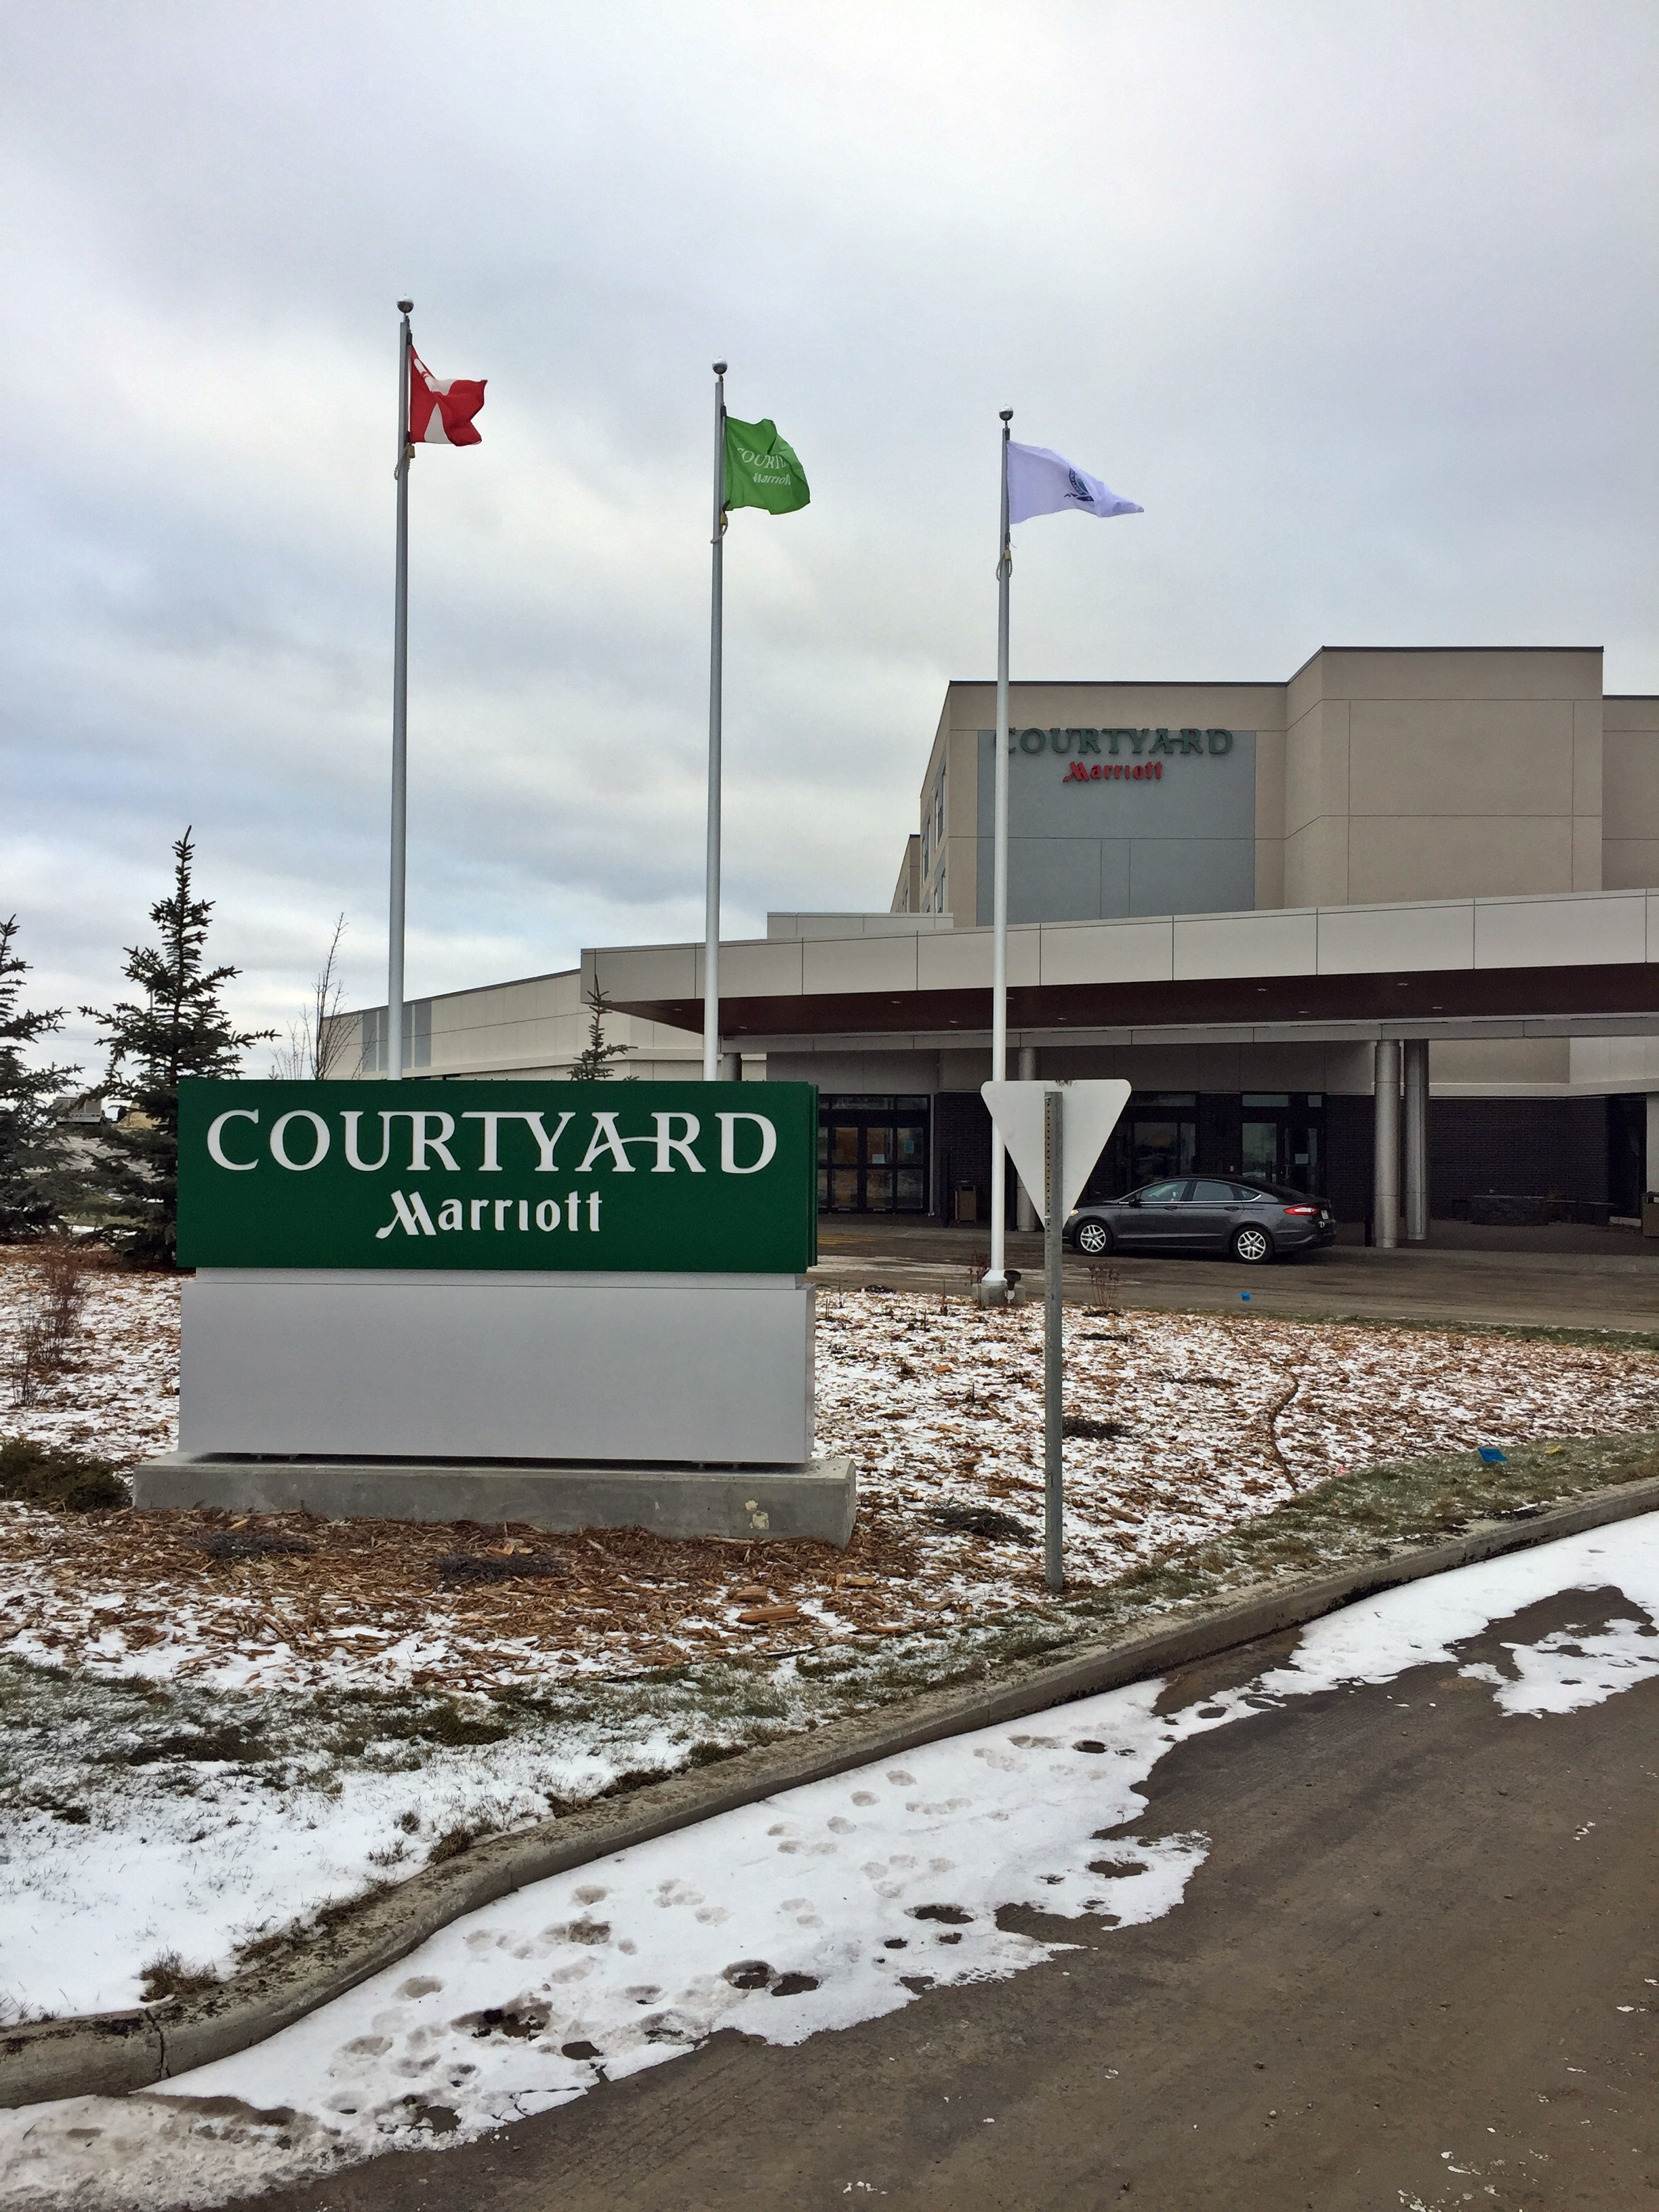 Guests Will Be Inspired At The New Toronto Marriott: Courtyard By Marriott Hotel Opens Today In Cold Lake, Alberta